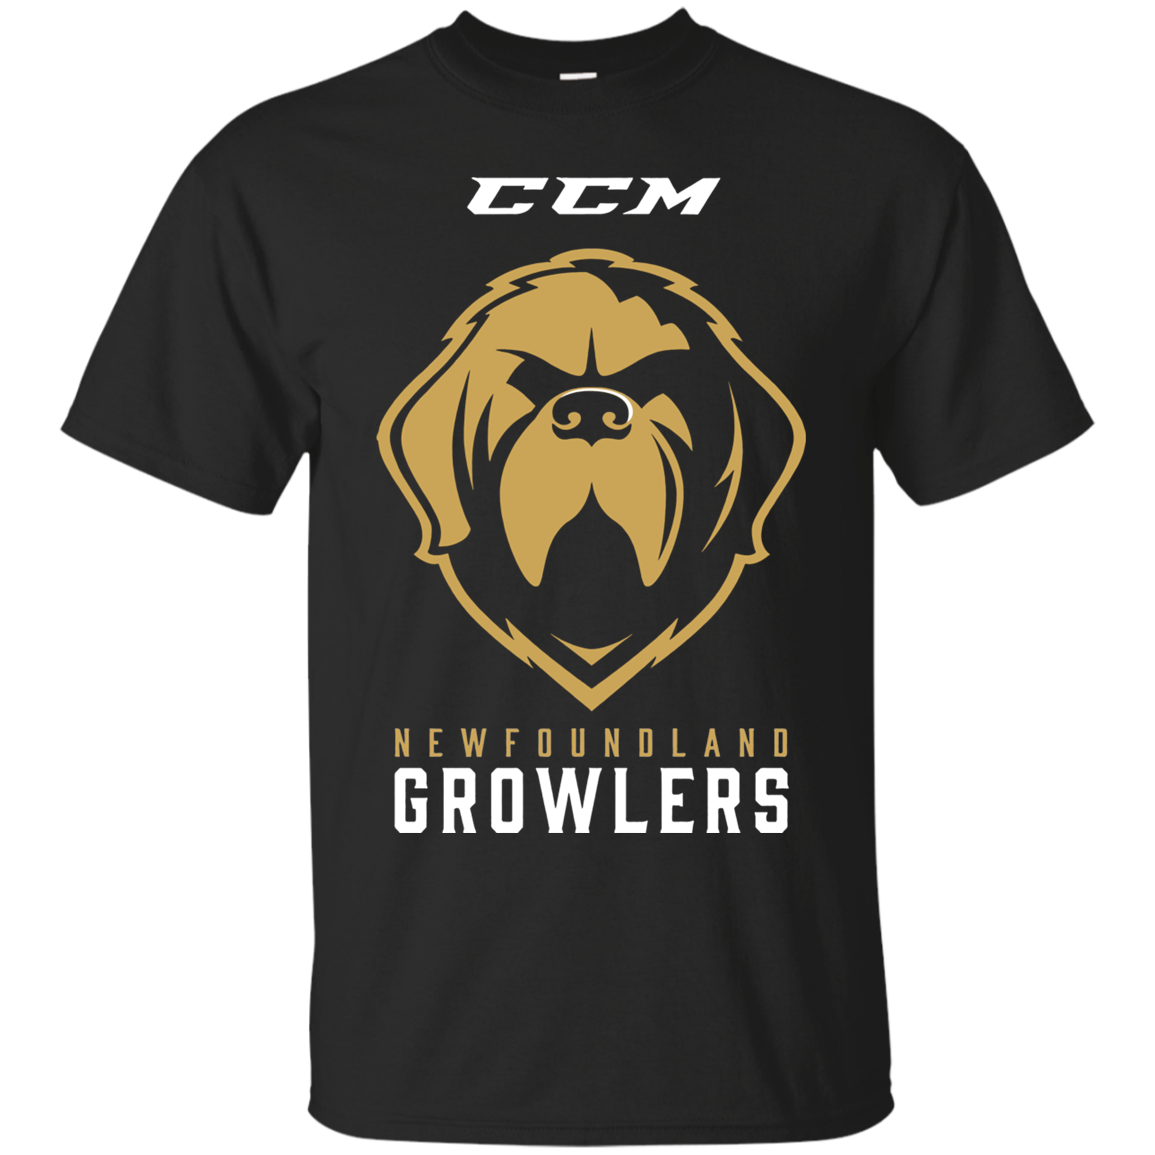 84 Newfoundland Growlers Men's T-shirt